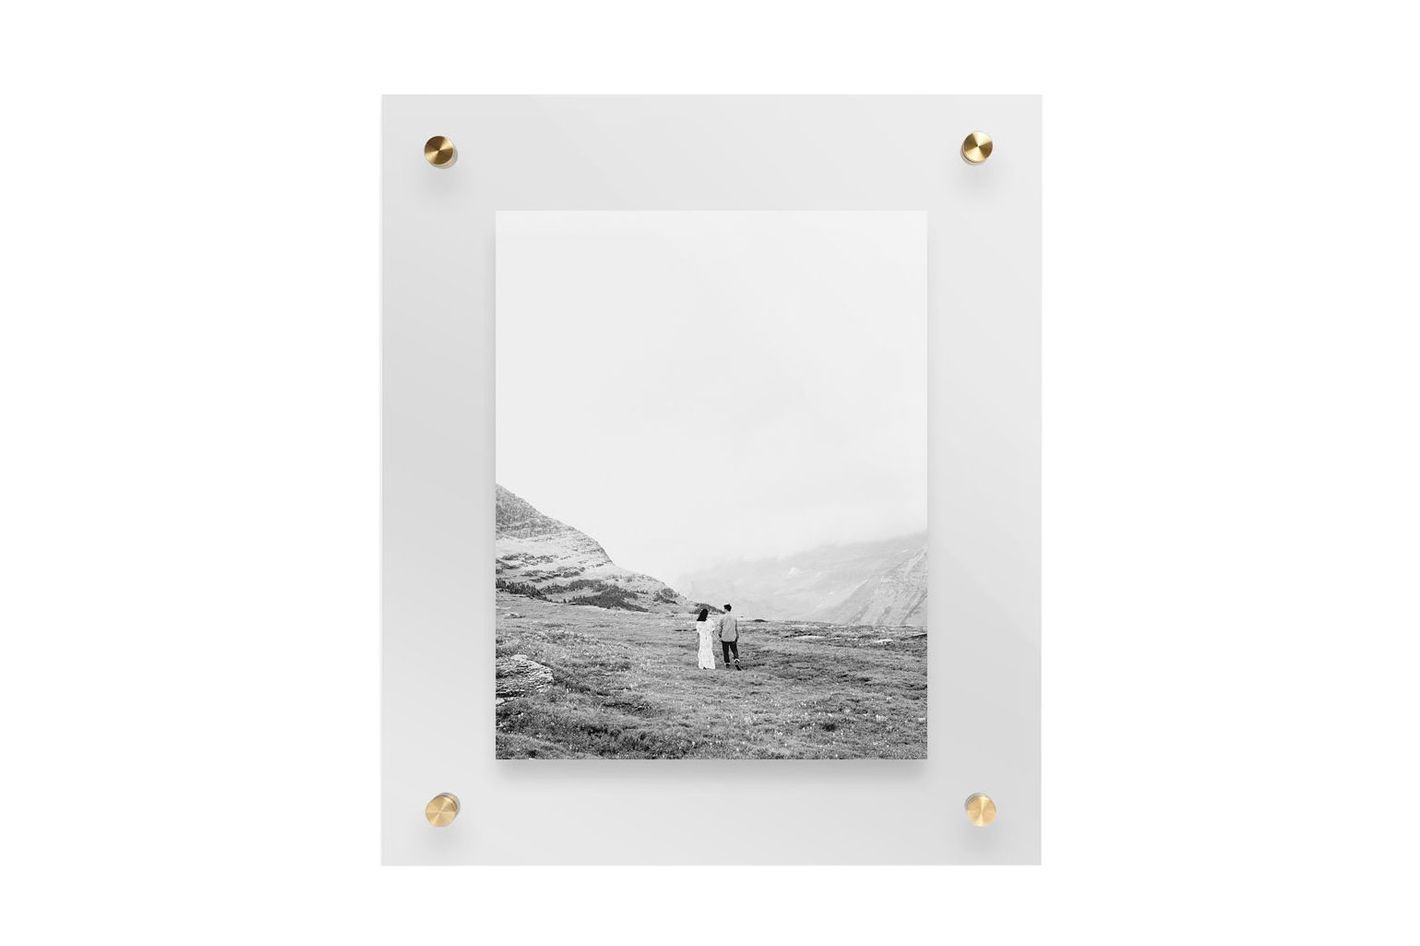 Best Affordable Wall-Art Frames